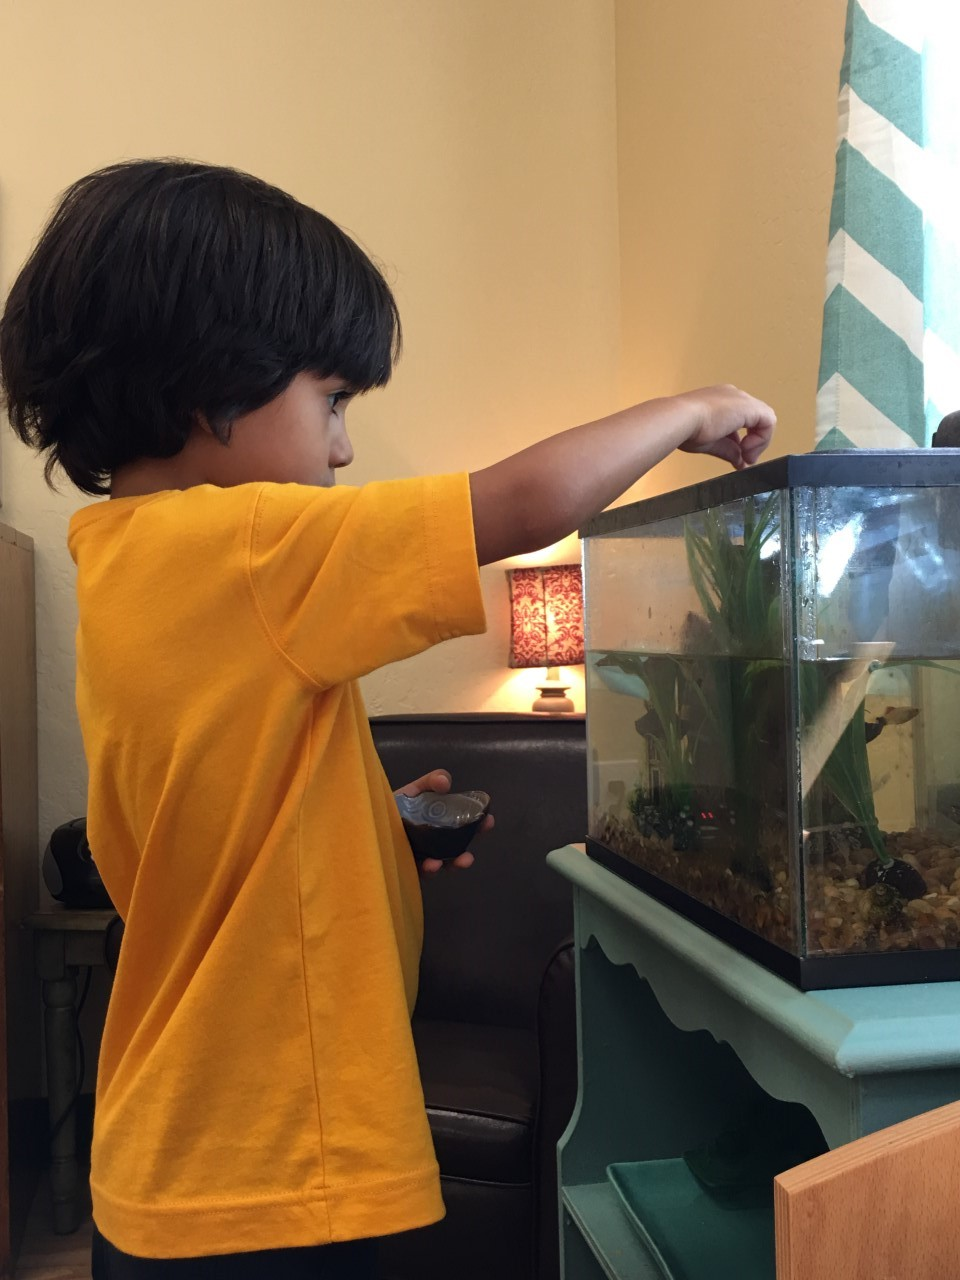 Feeding the classroom fish